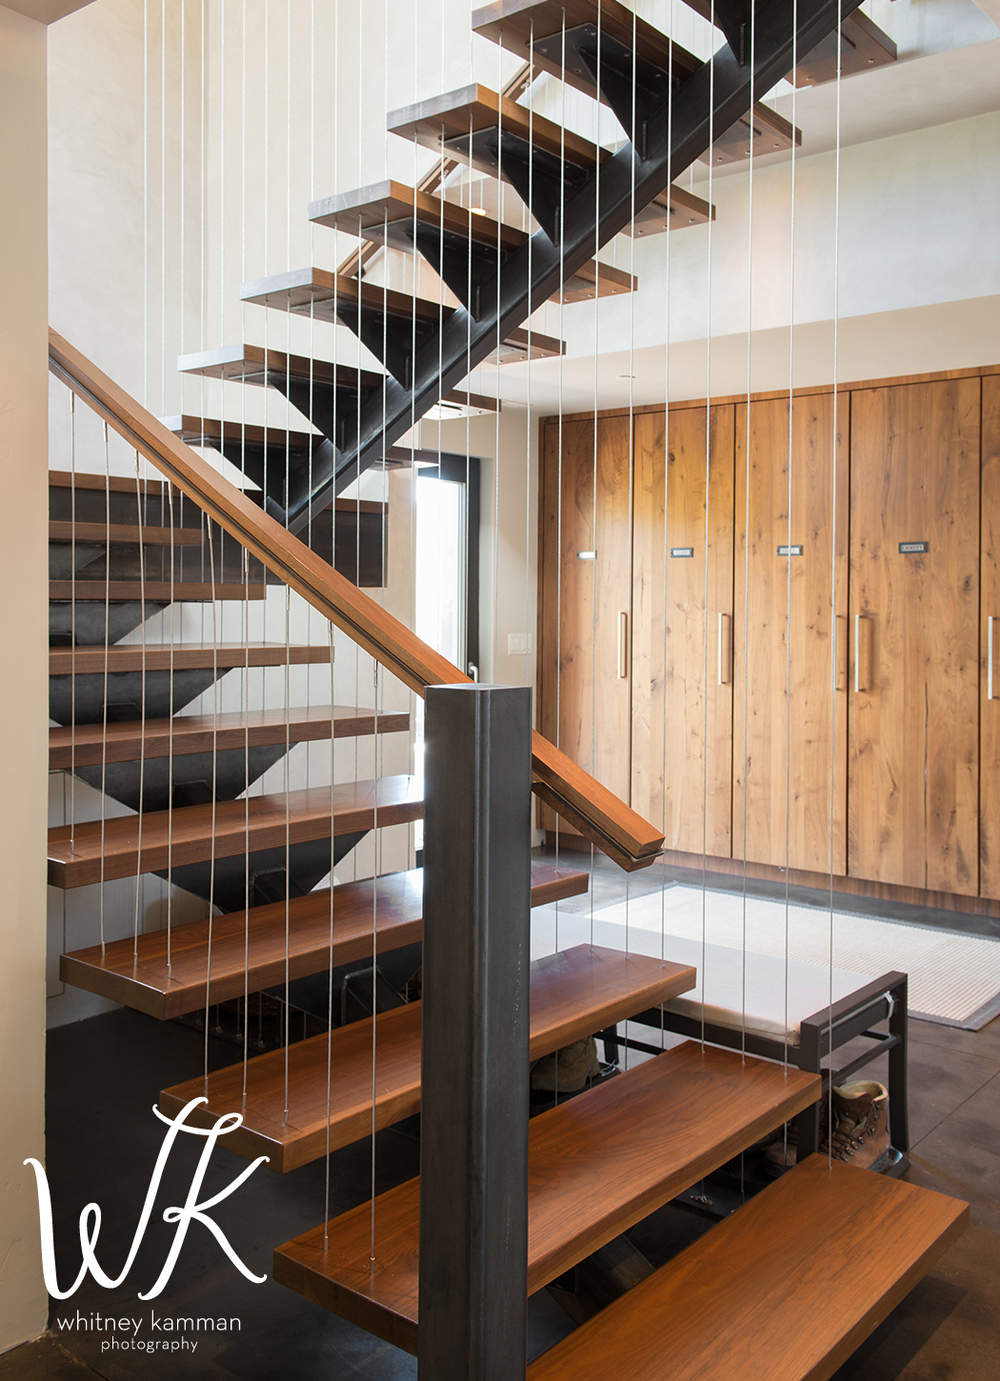 442-Staircase-blog.jpg